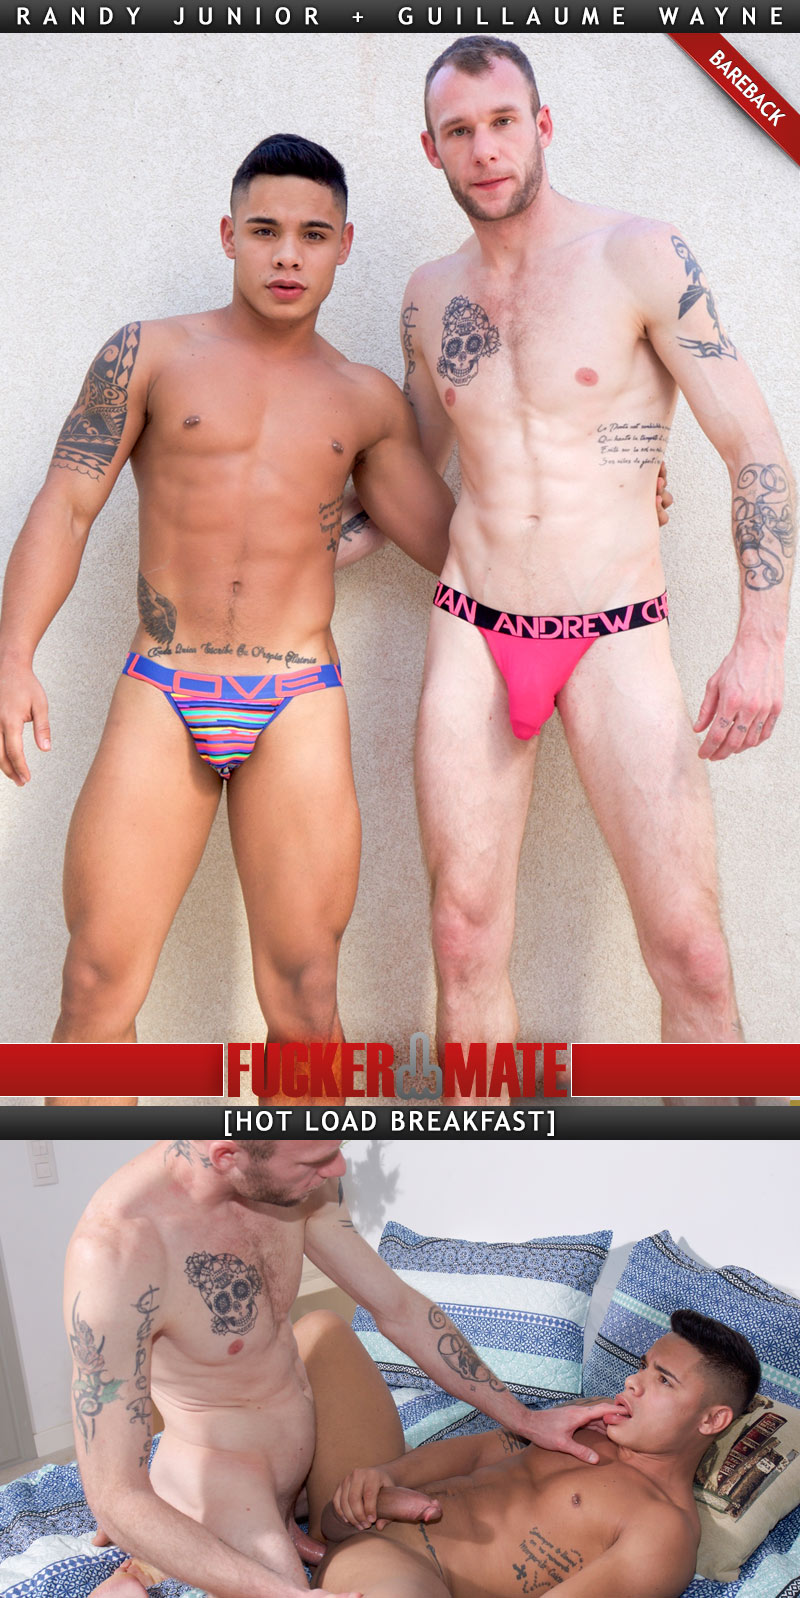 Hot Load Breakfast (Guillaume Wayne Fucks Randy Junior) (Bareback) at Fuckermate